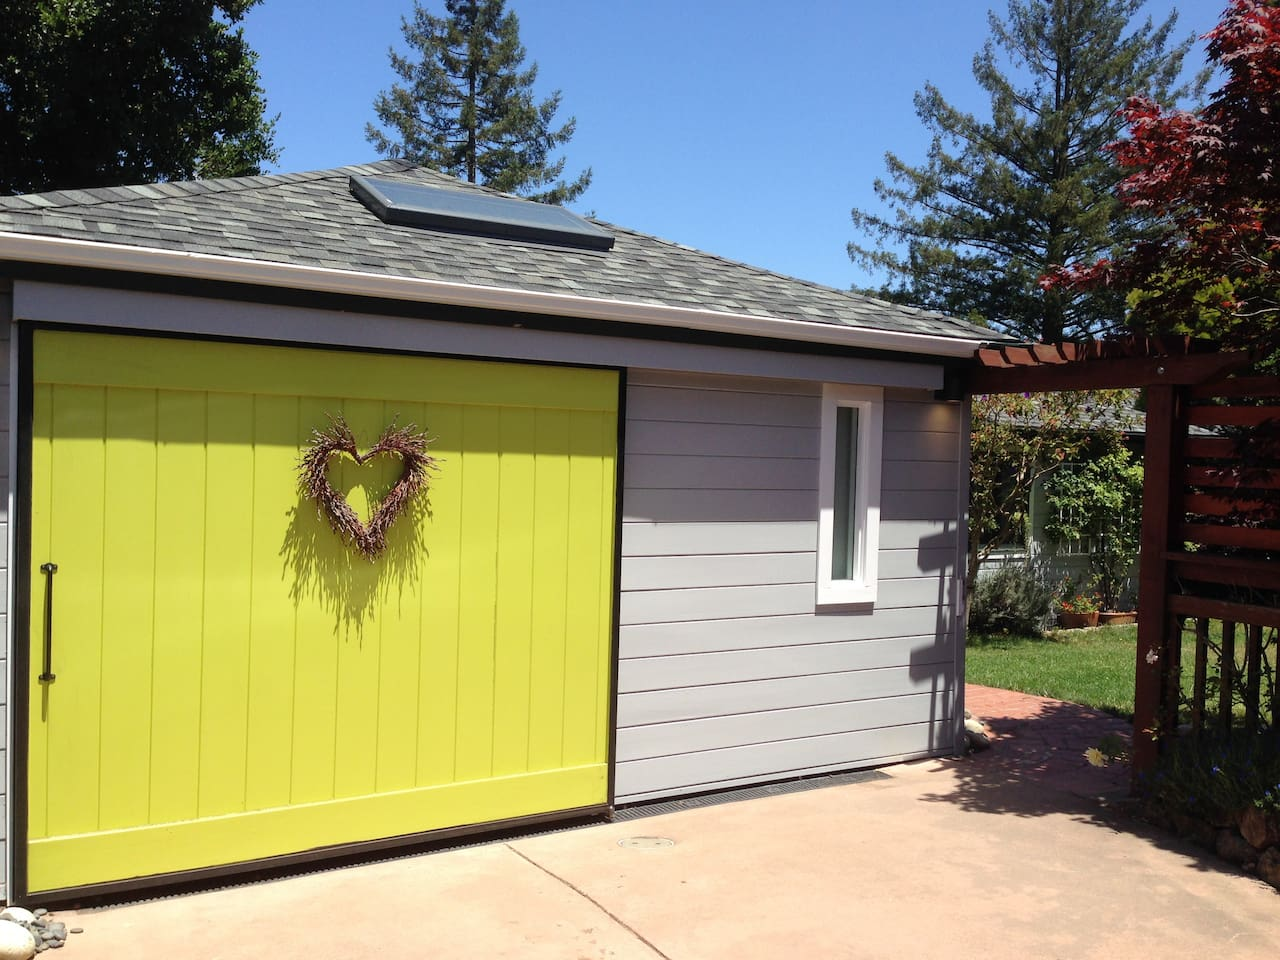 Can't miss the bright garage door and entrance to our home through the yard. Our home is set back behind another and accessed via the driveway. Very private.